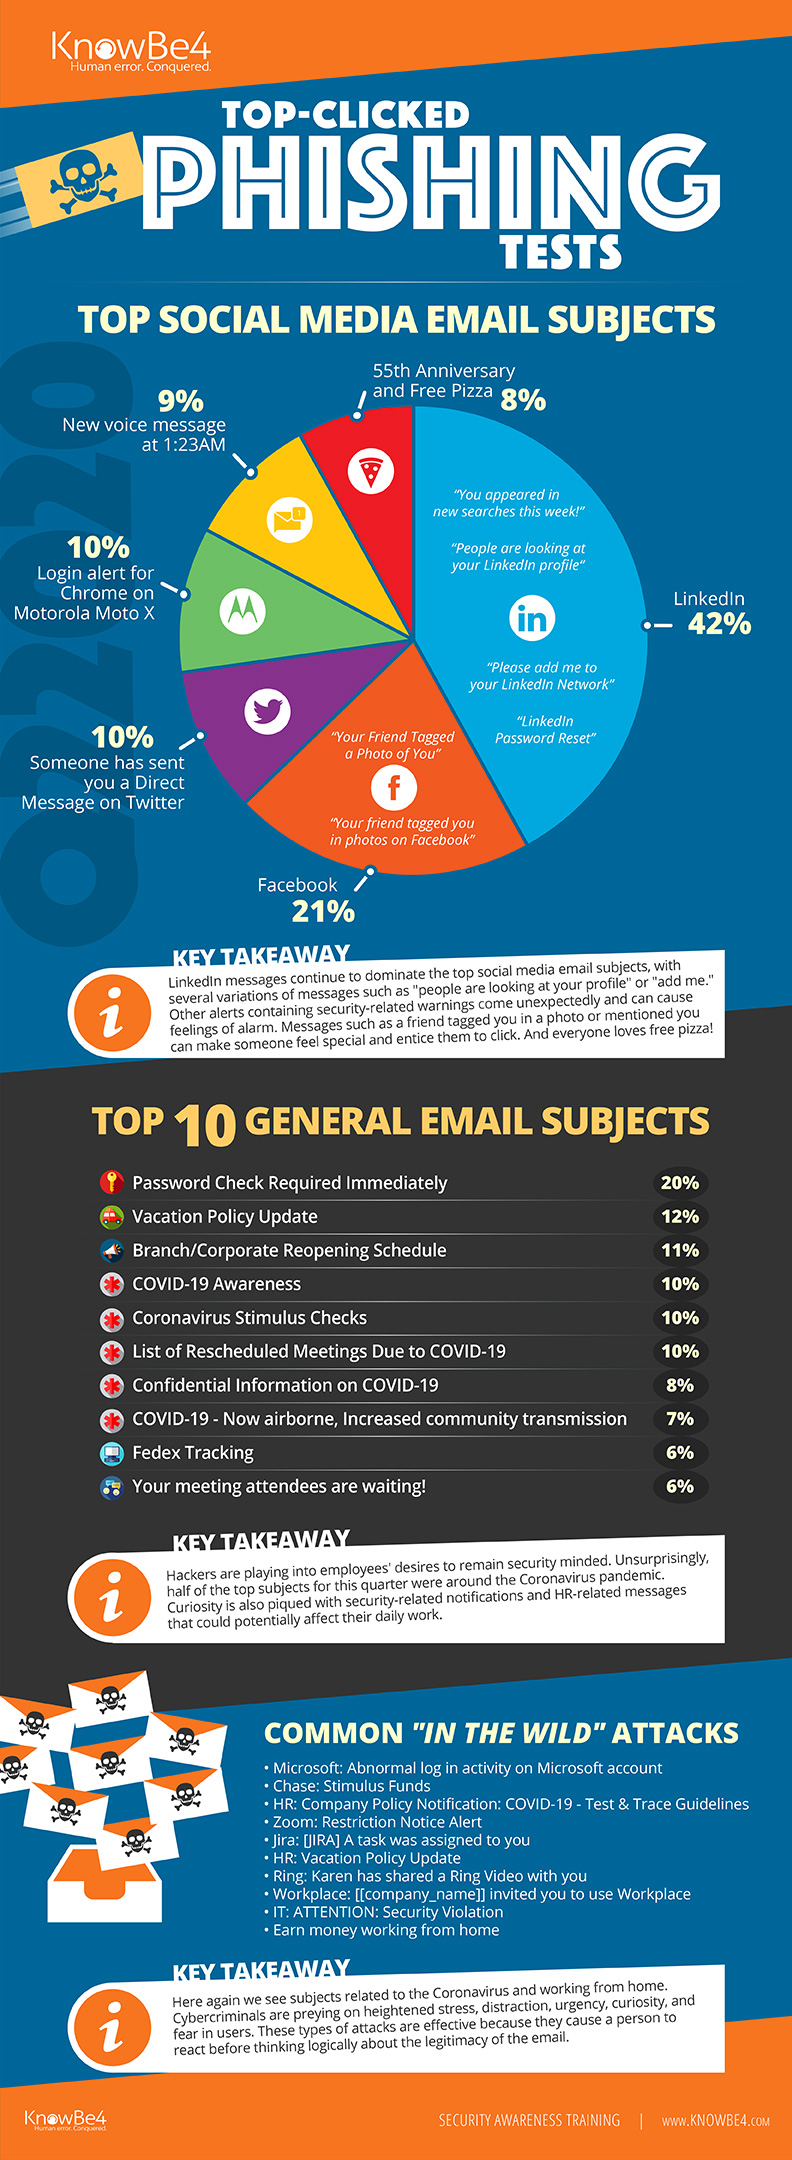 KnowBe4's Top Clicked Phishing Emails Q2 2020 Infographic